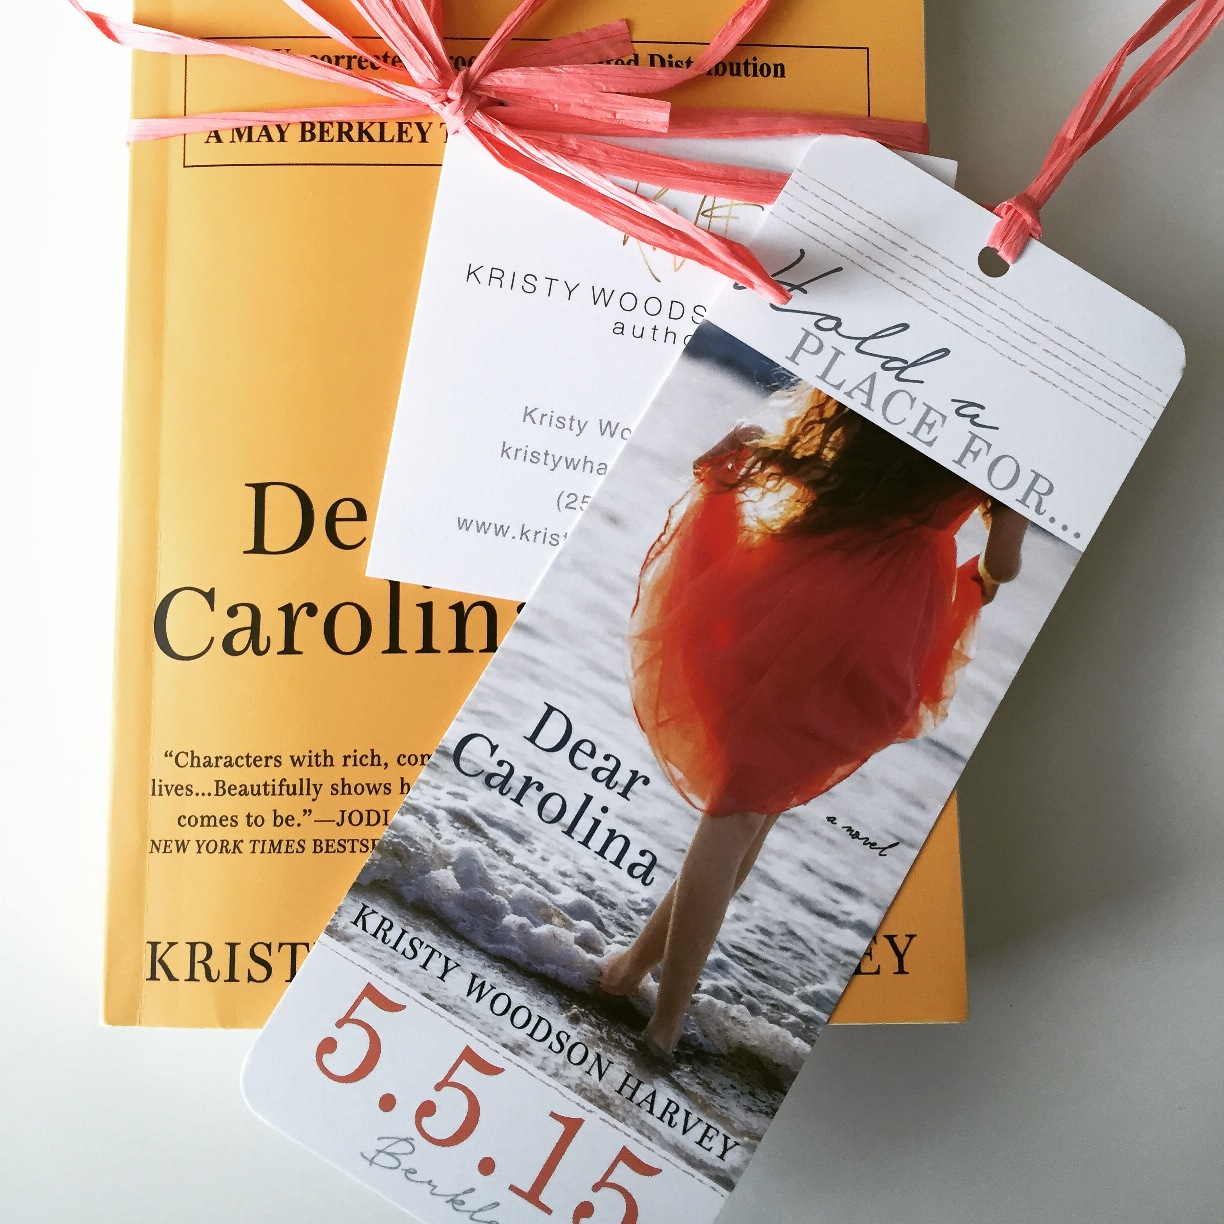 Years in the making: the launch of  Dear Carolina.